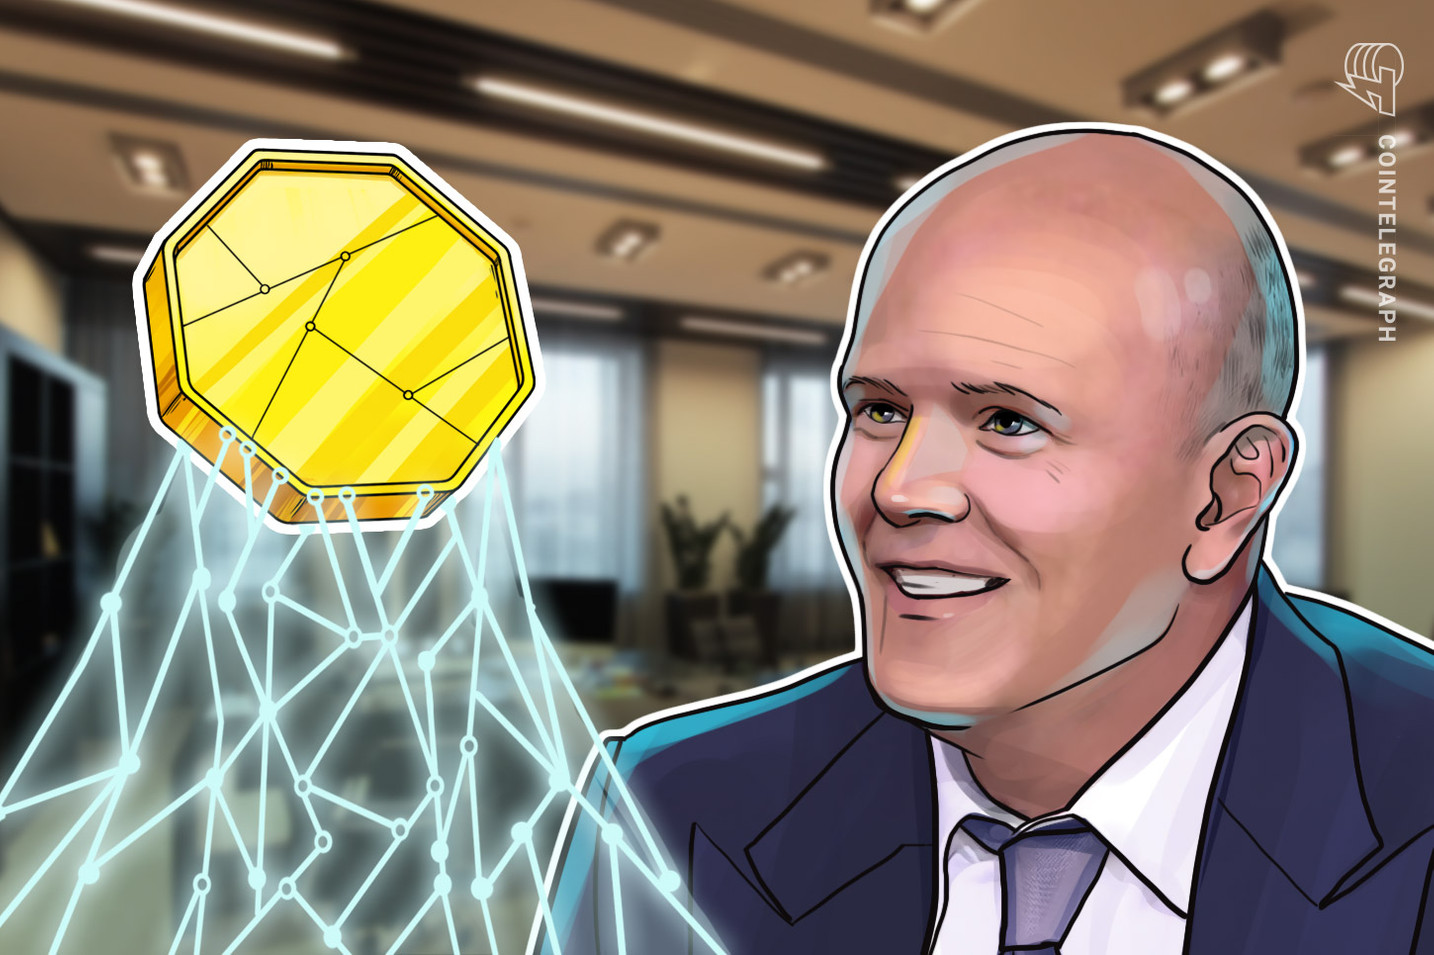 Mike Novogratz: Institutions Will Get Into Bitcoin in Q1-Q2 2019 Bringing 'New Highs'